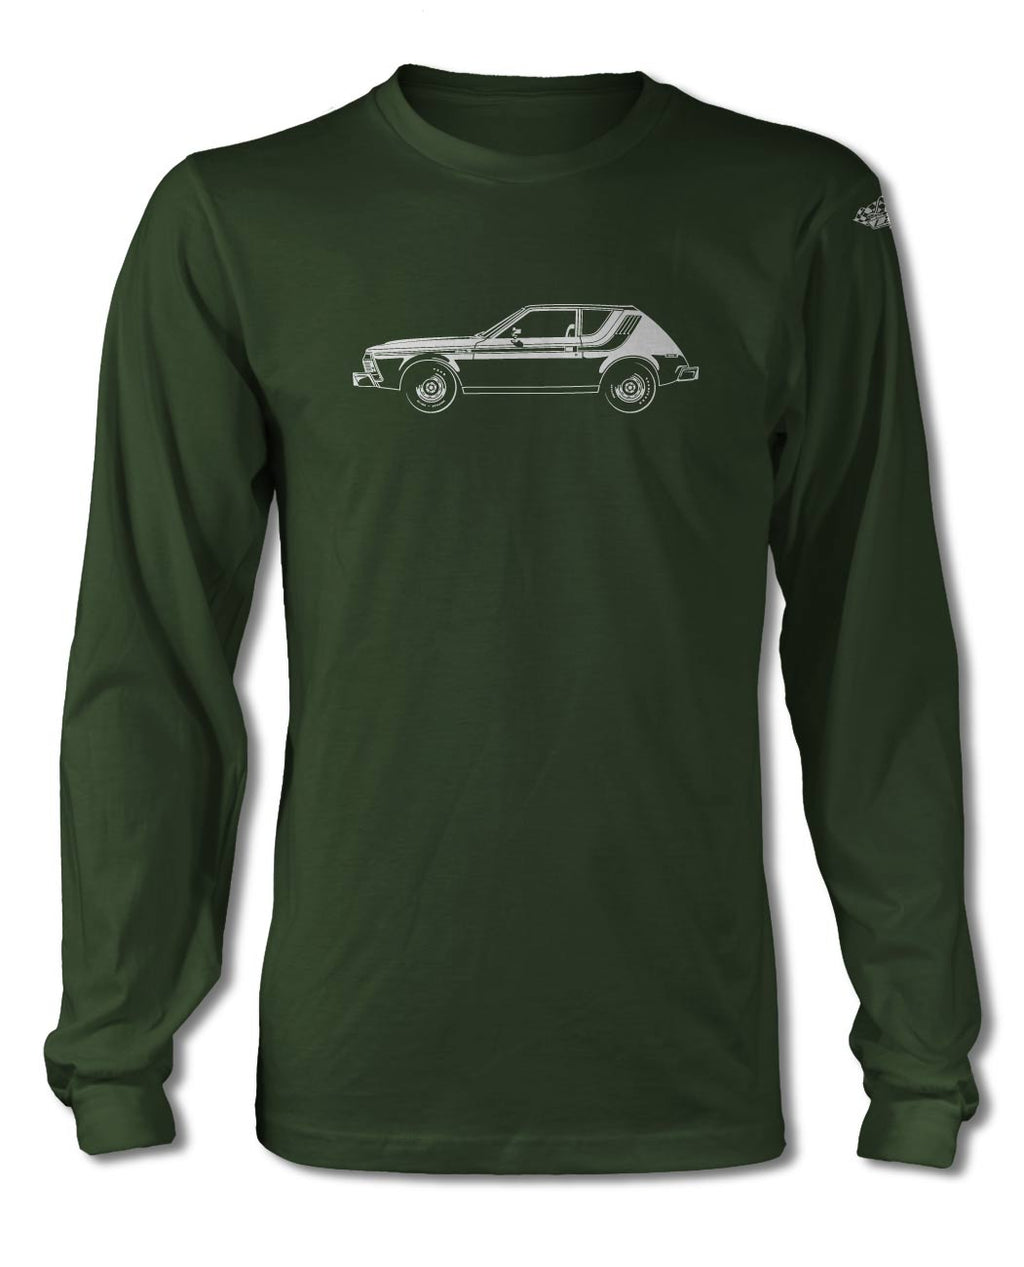 1974 AMC Gremlin X T-Shirt - Long Sleeves - Side View